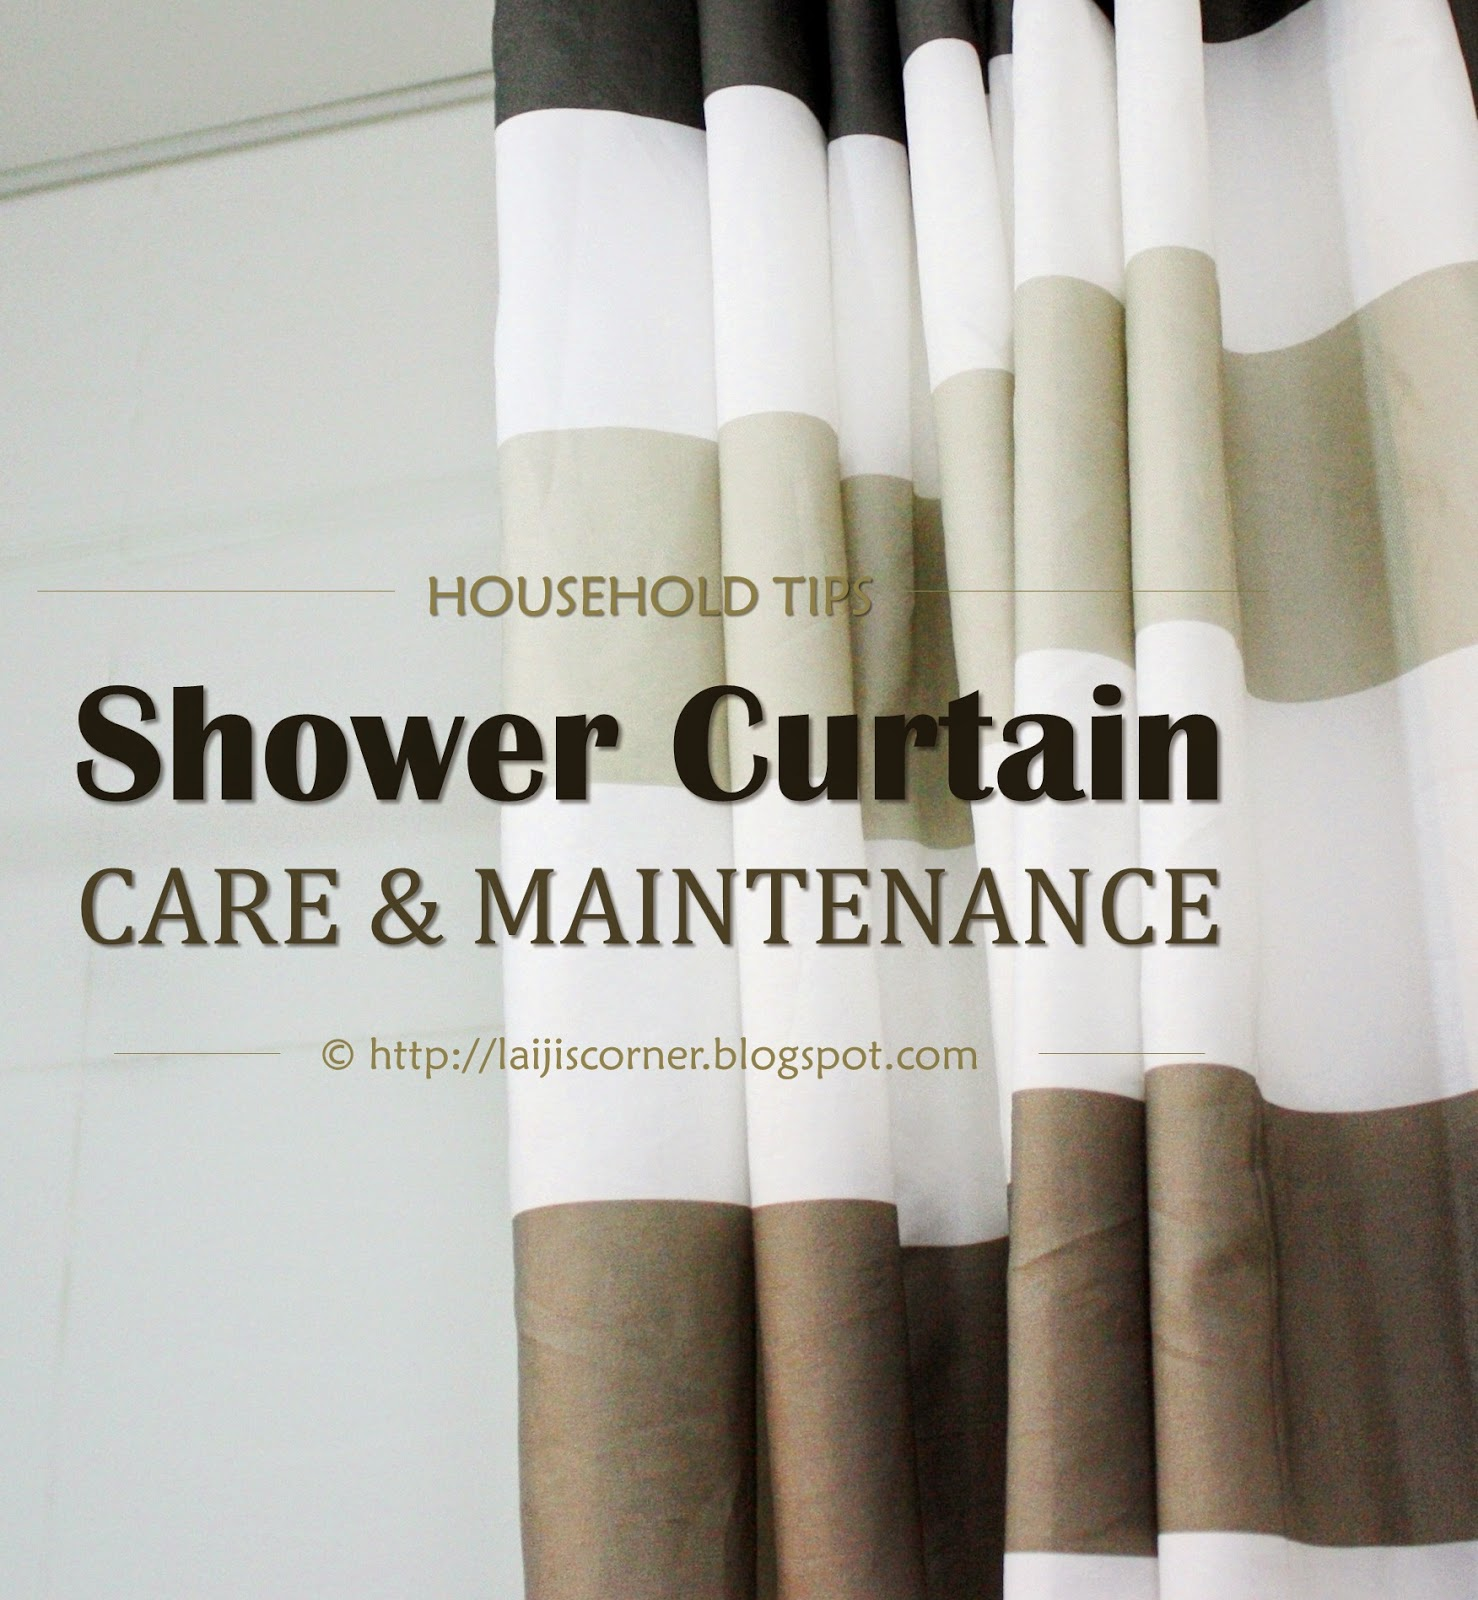 Shower Curtain - Care & Maintenance